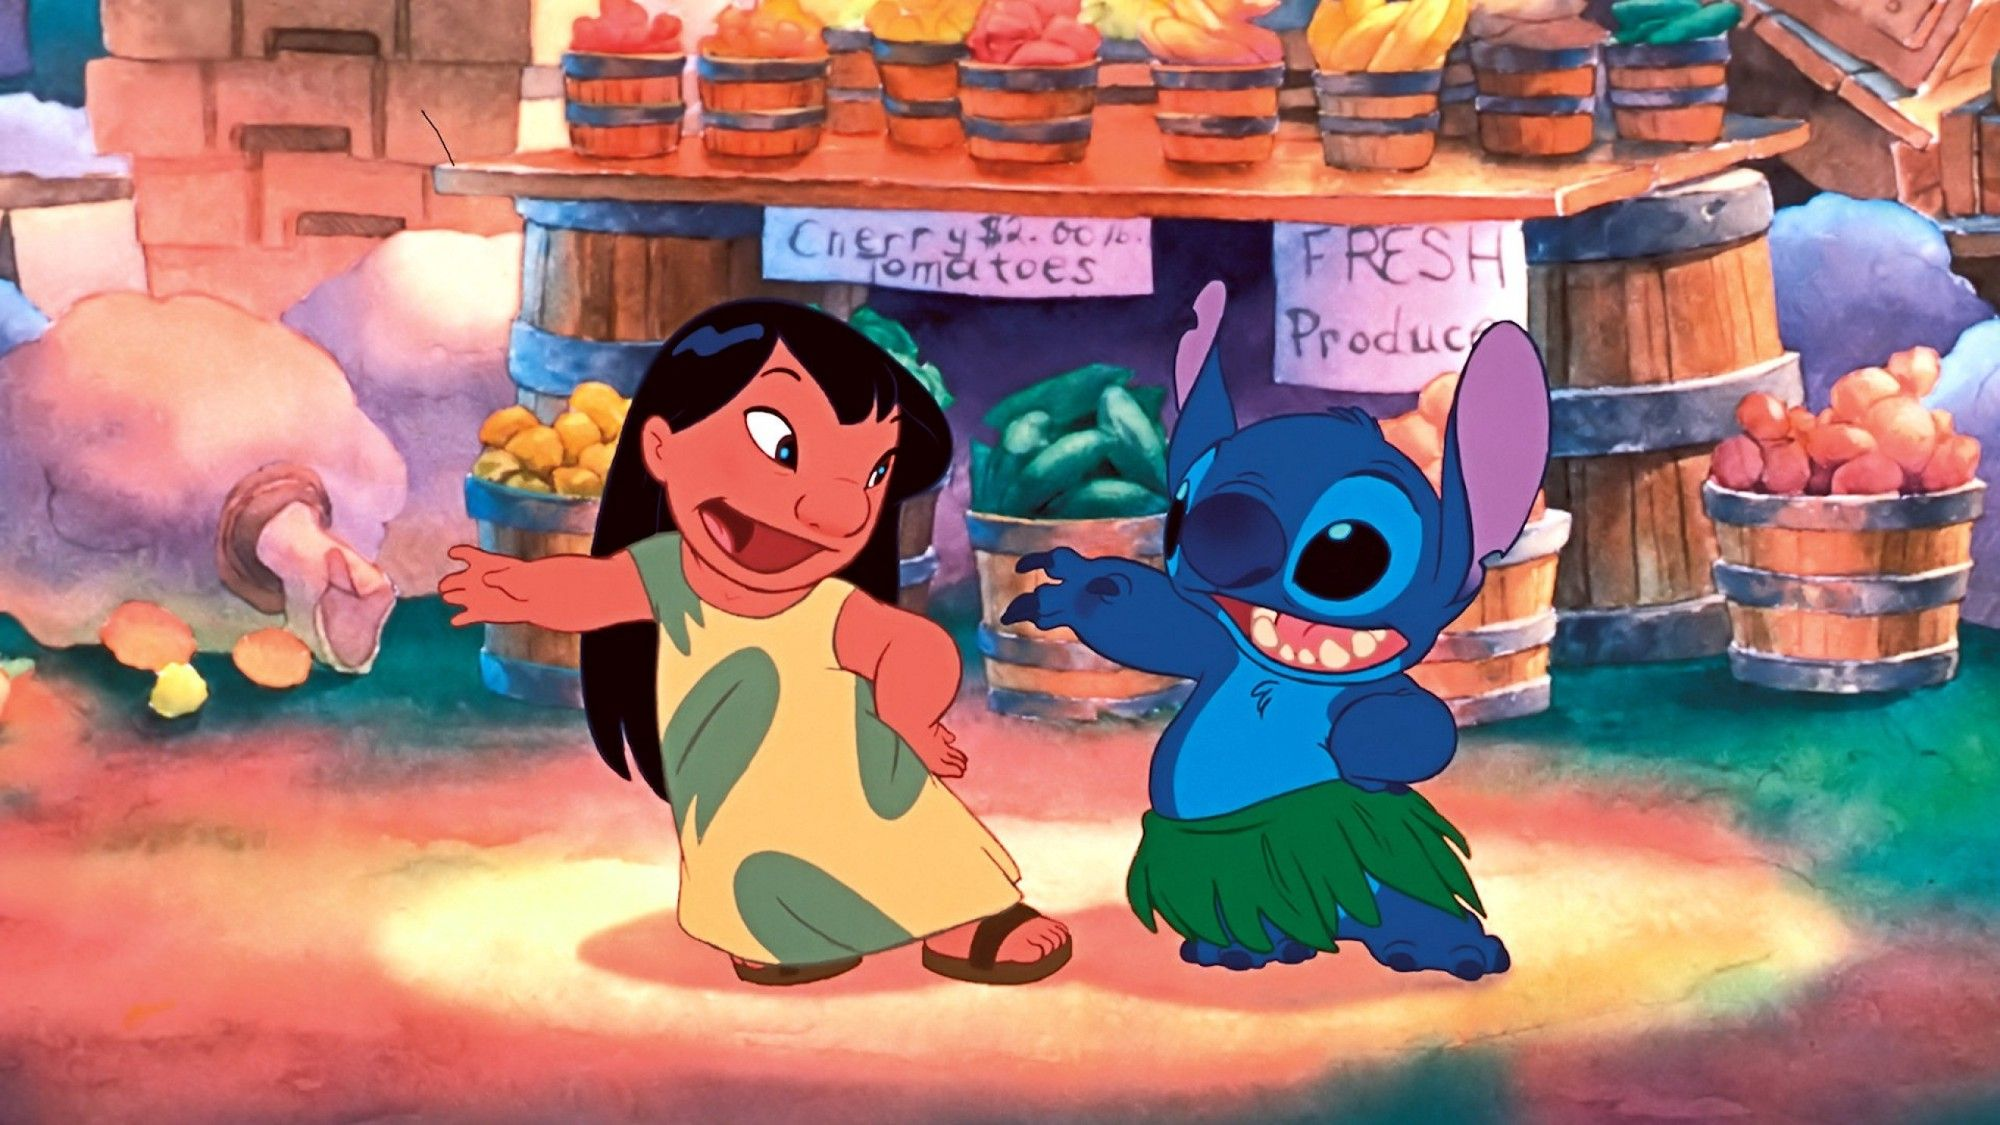 Lilo and Stitch dancing